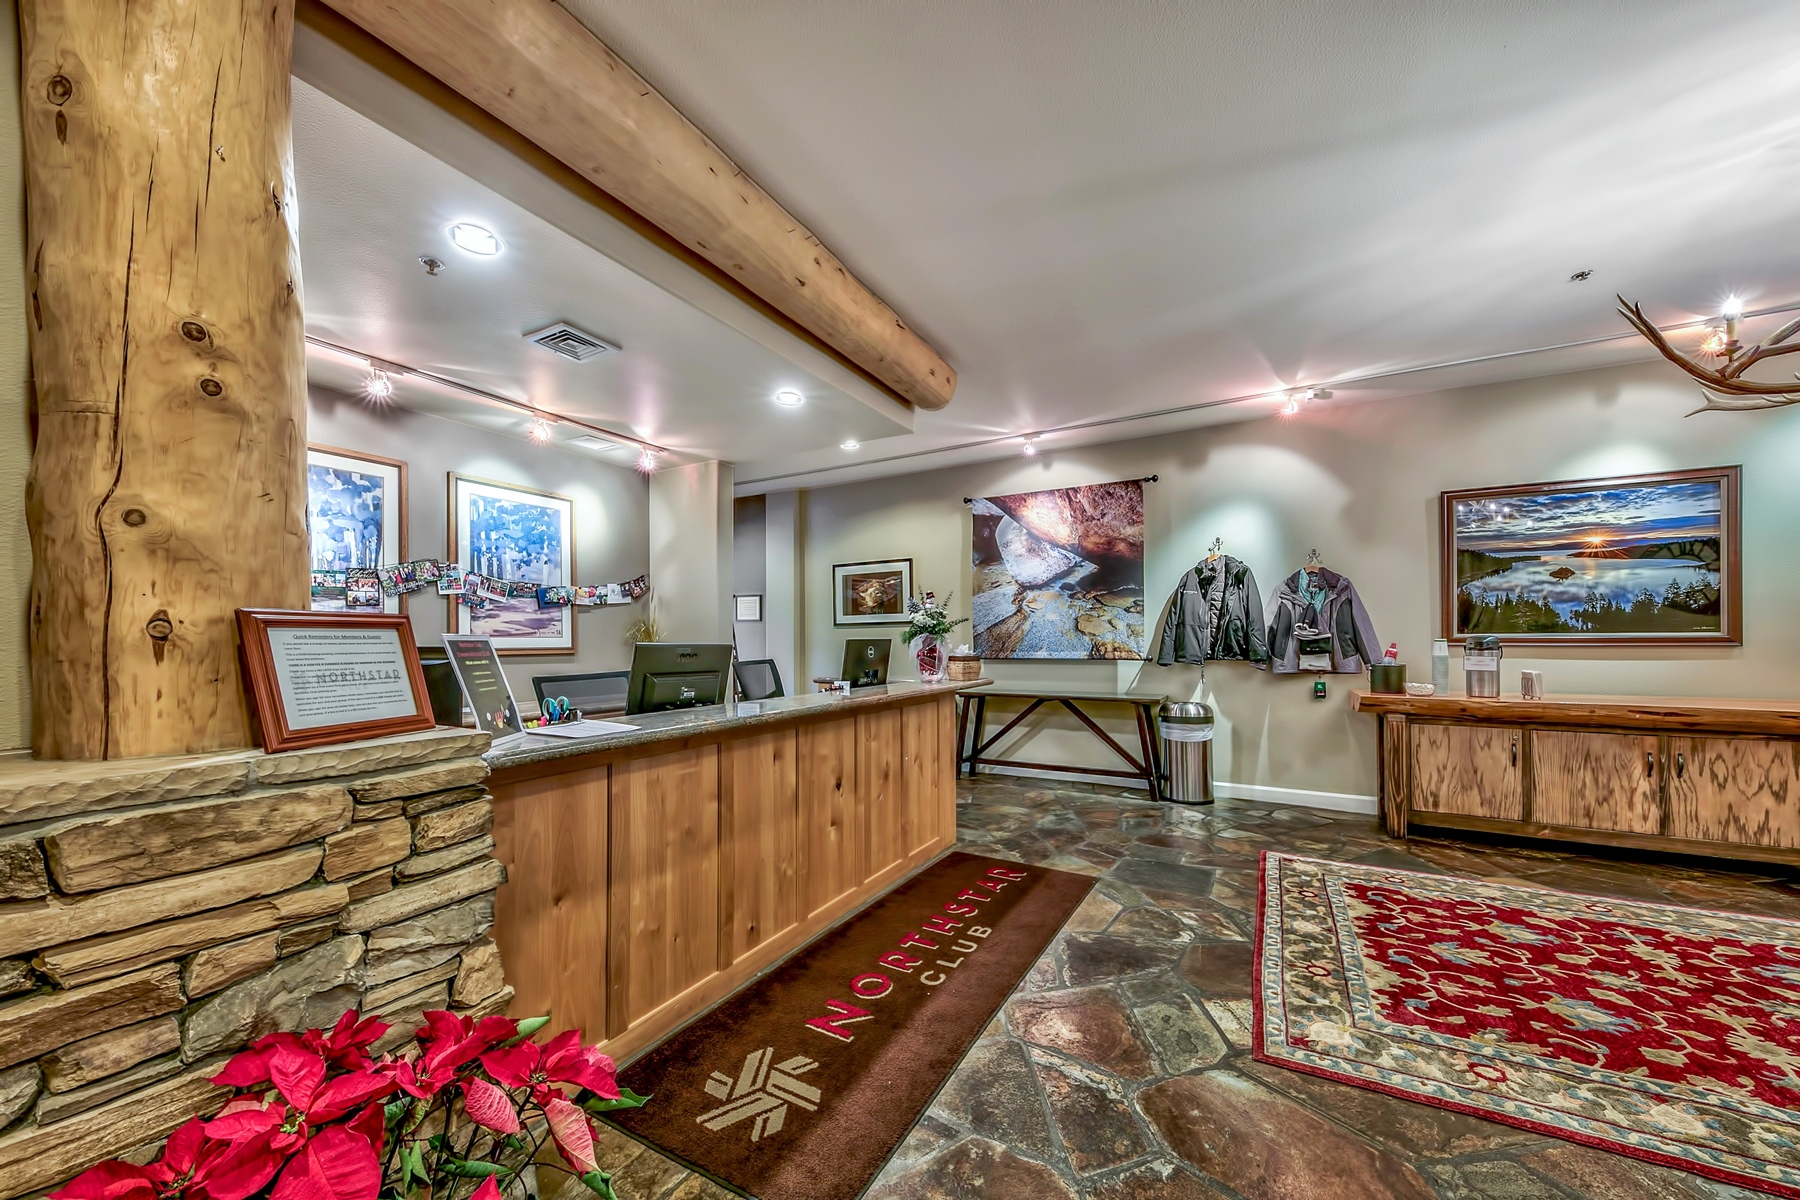 Additional photo for property listing at 2100 North Village Drive Unit# 406/#18, N4-31, Truckee, CA 96161 2100 North Village Drive Unit# 406/#18, N4-31 Truckee, California 96161 United States